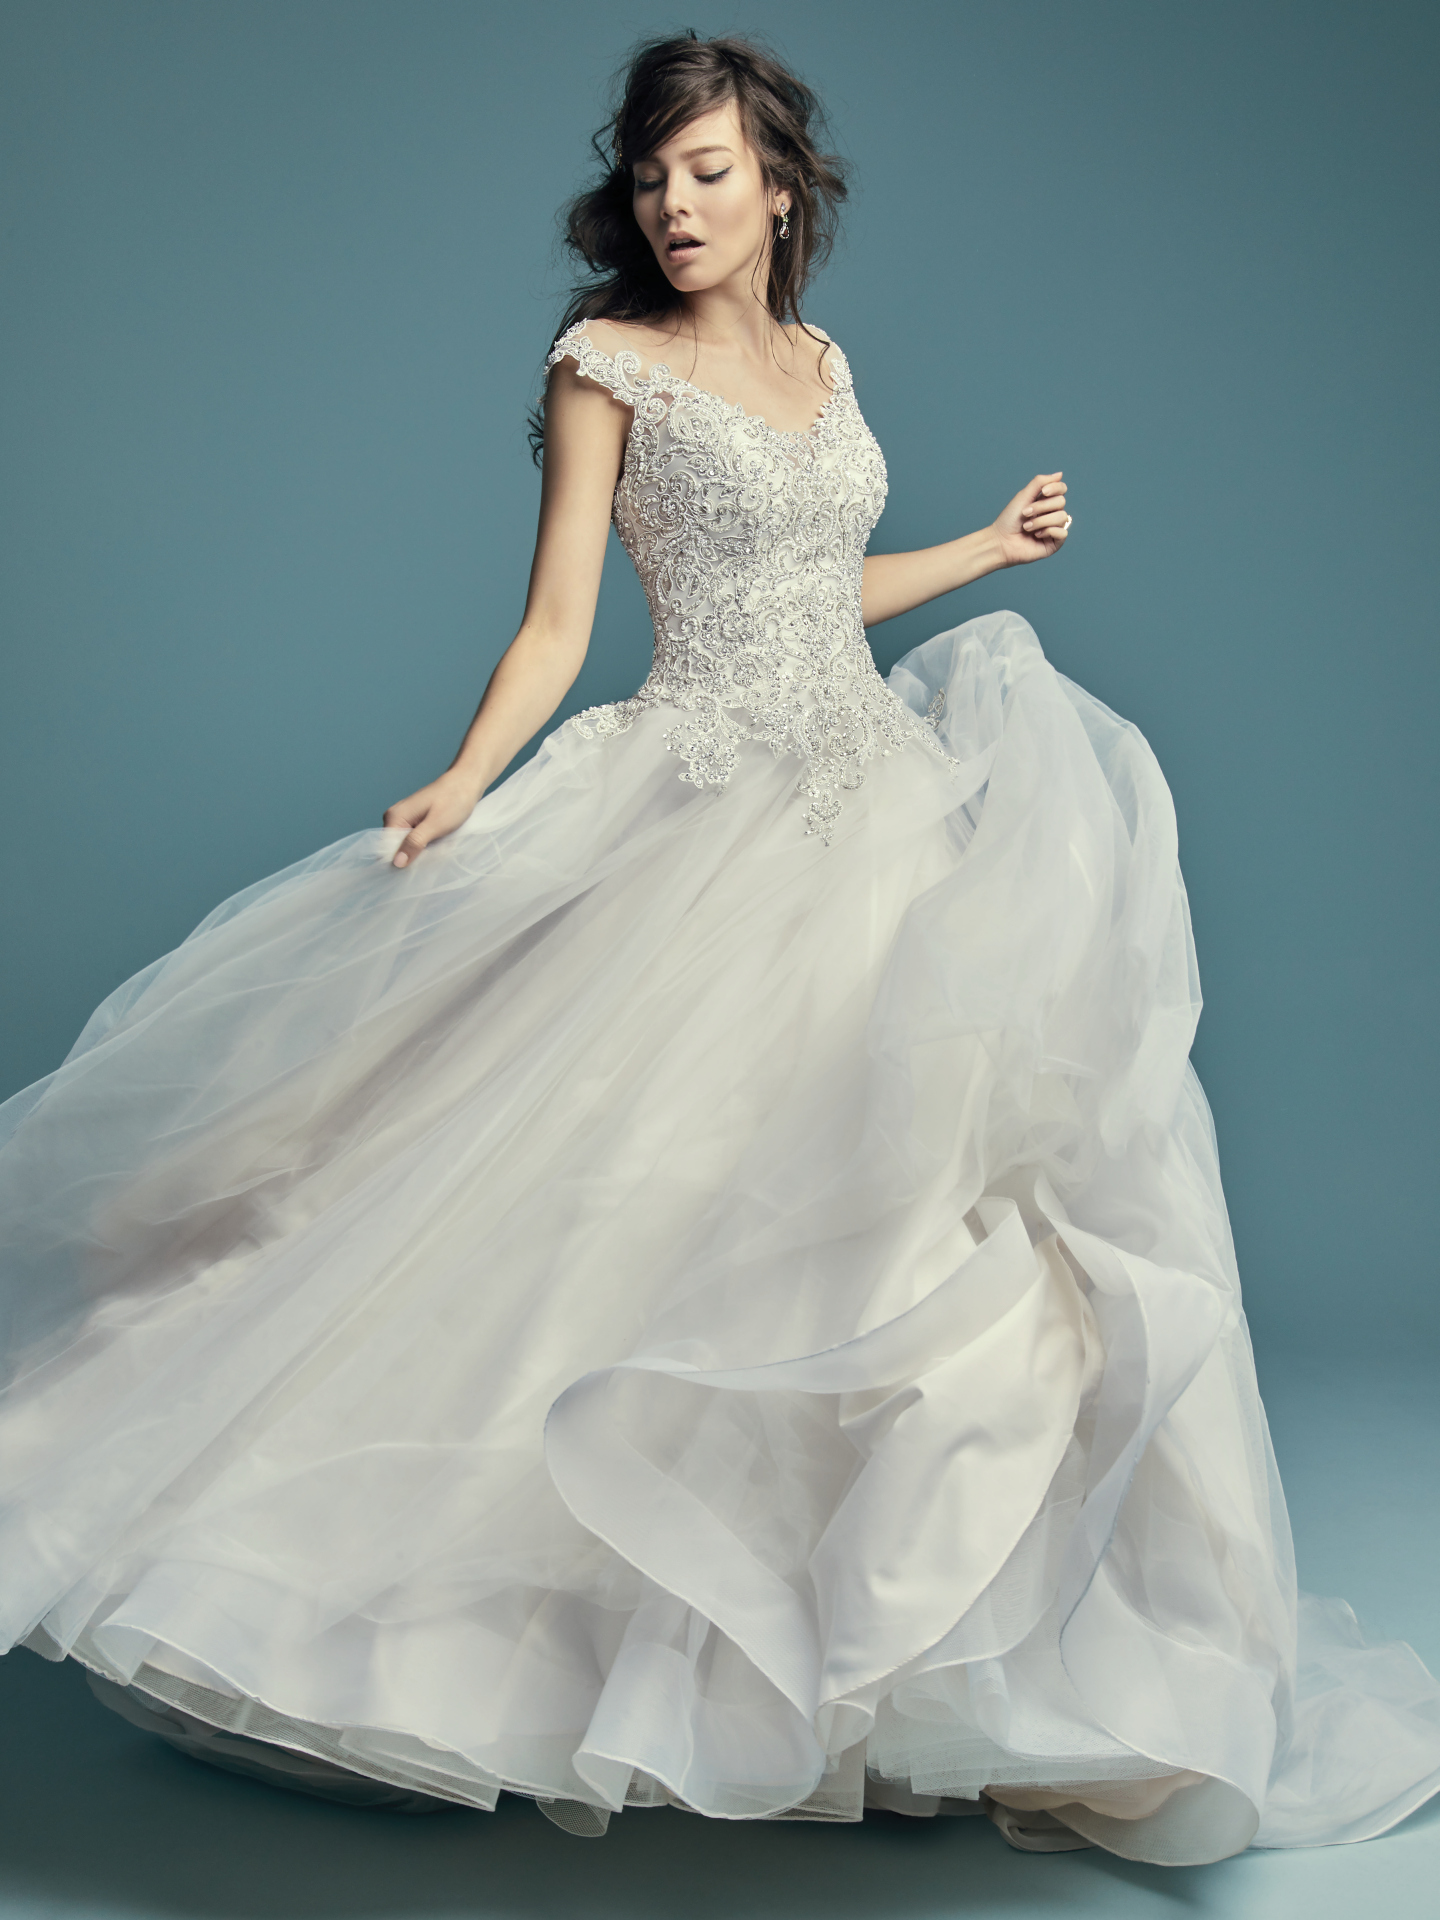 Princess Ballgowns For Royal Weddings To Inspire Your Fairytale ...